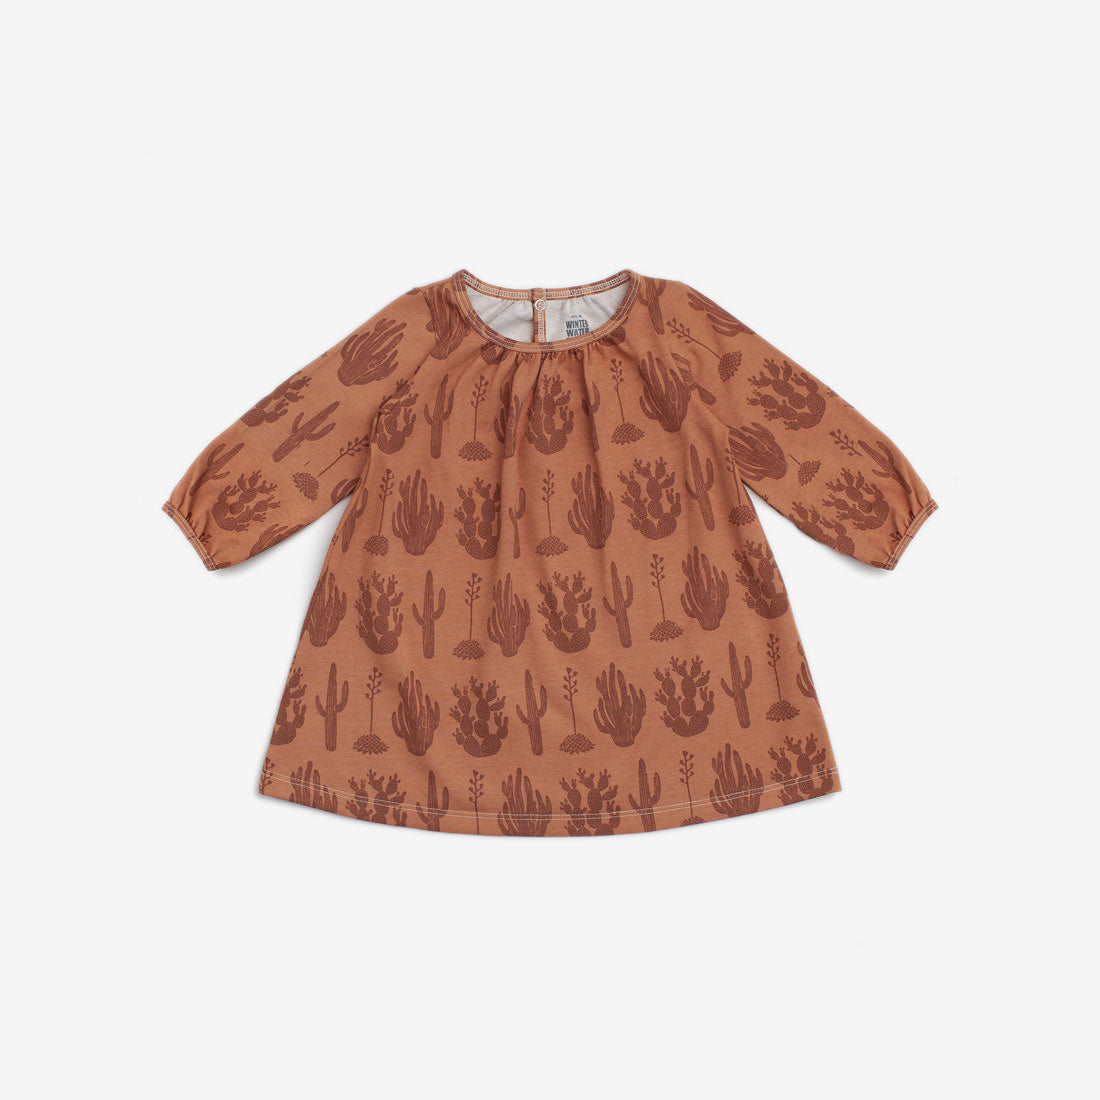 Juniper Organic Baby Dress - Caramel Cactus